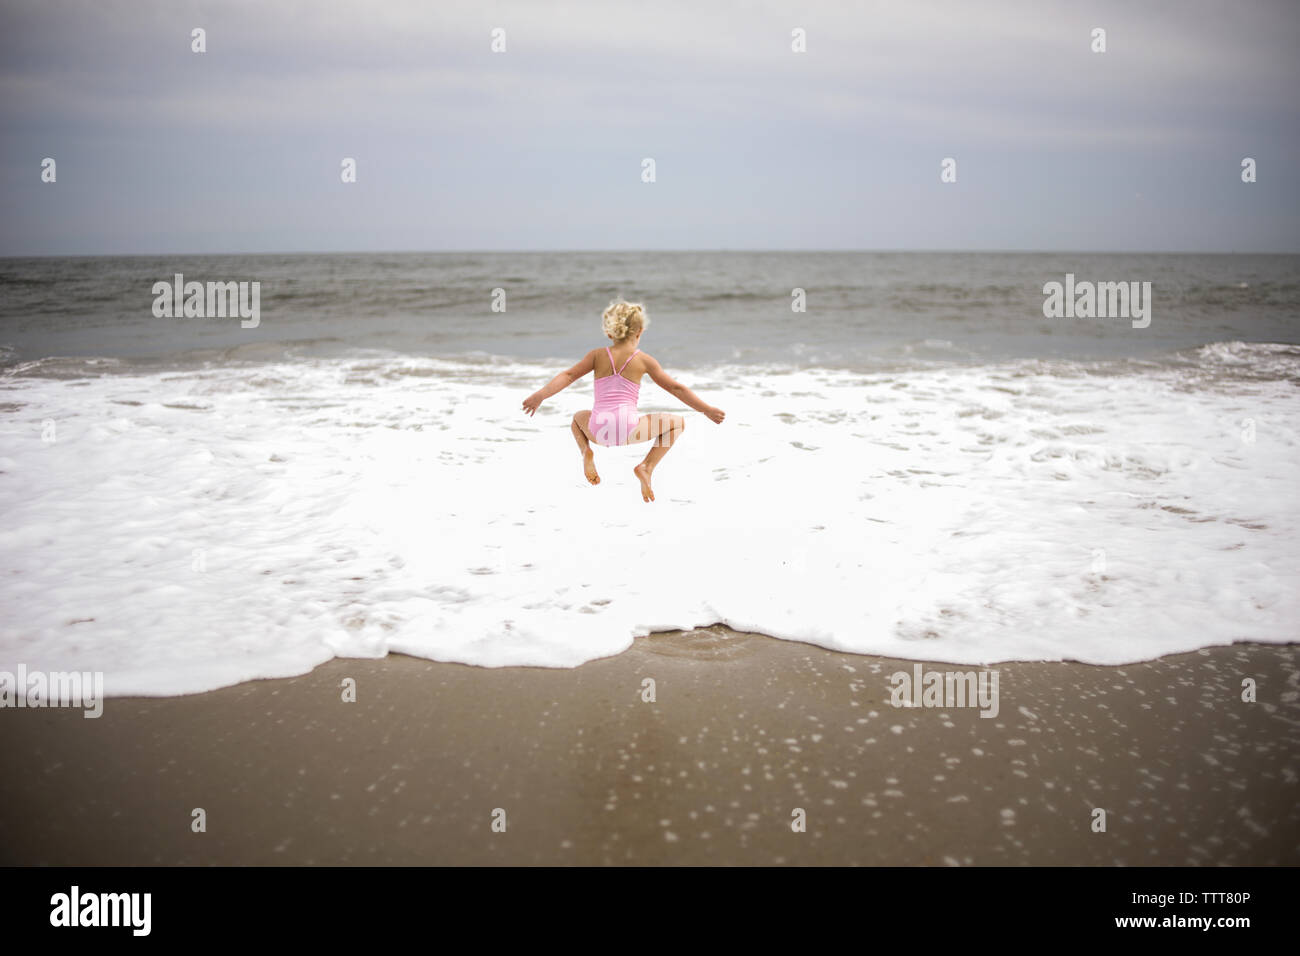 Rear view of playful girl jumping on shore at beach against sky - Stock Image